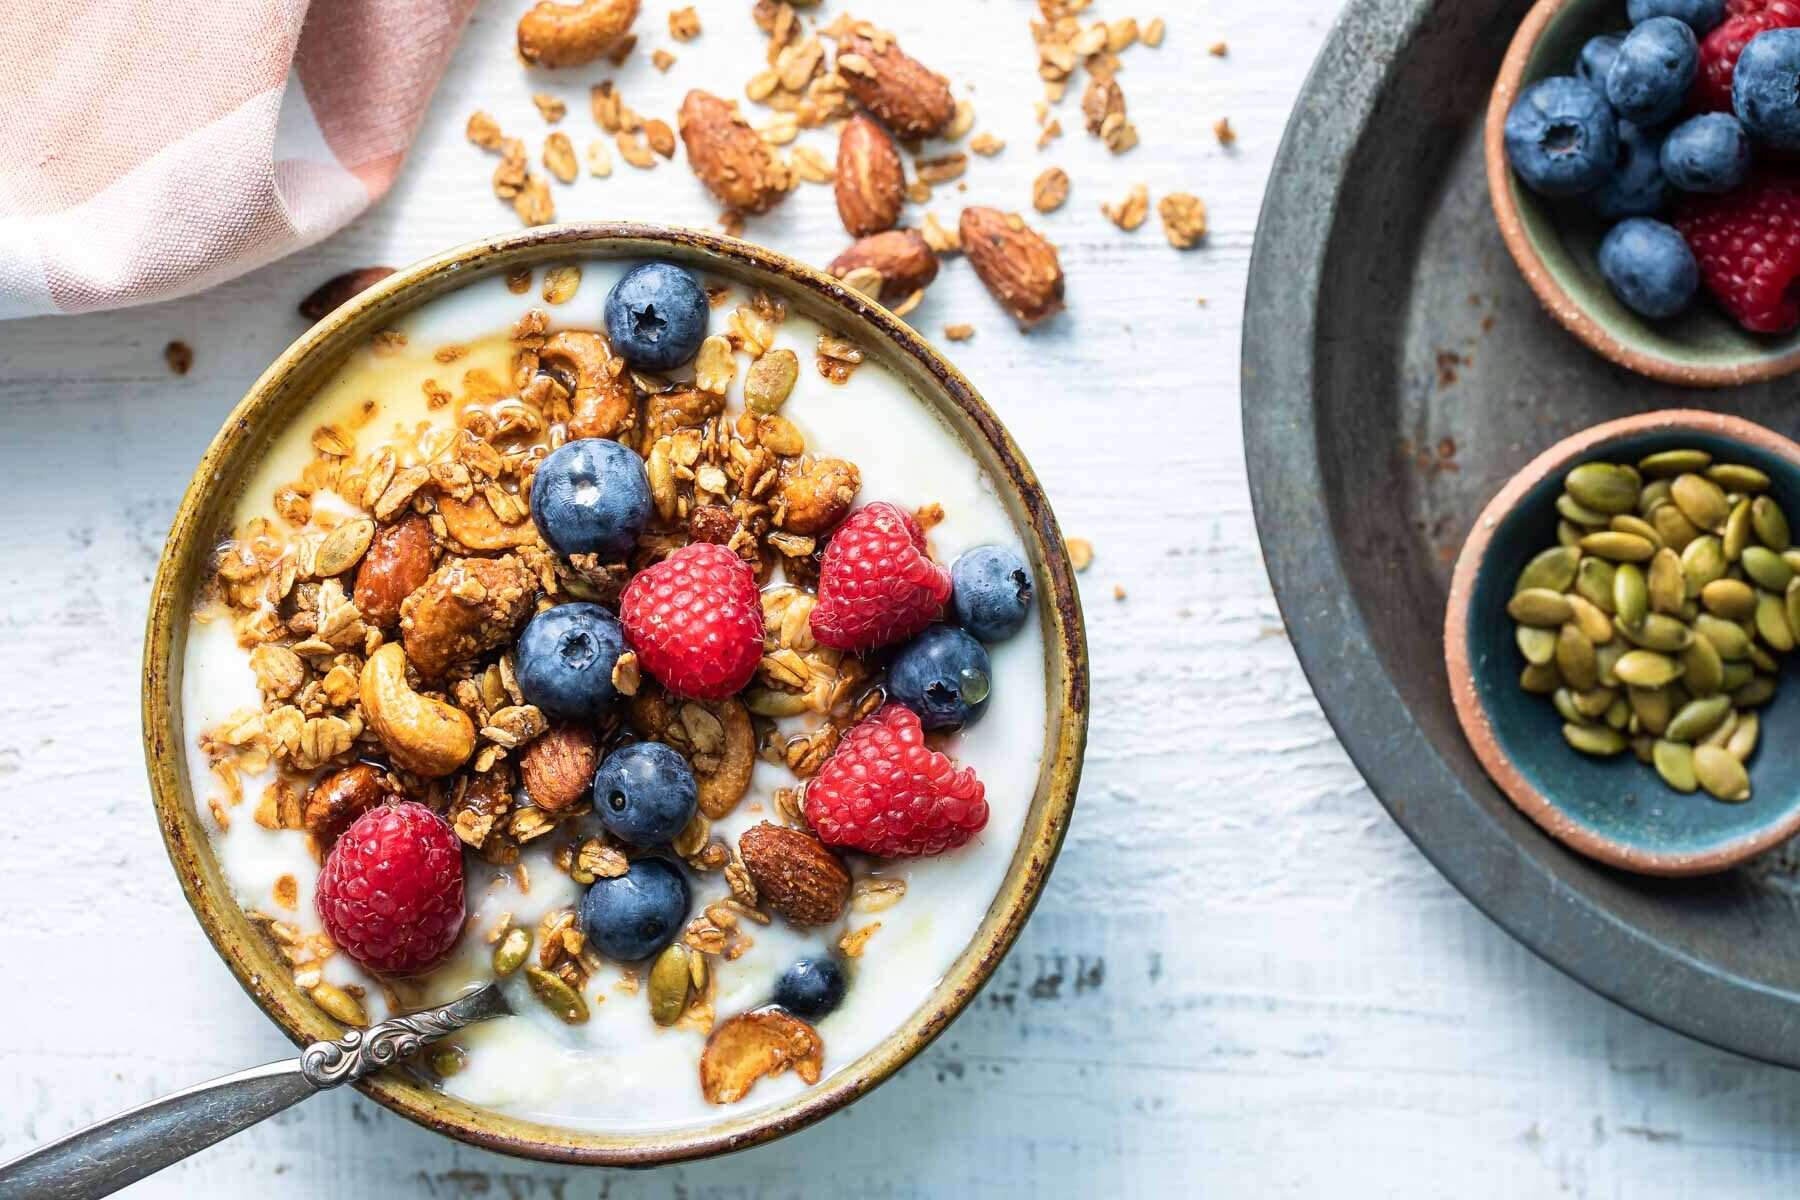 Granola and berries topping a bowl of yogurt.